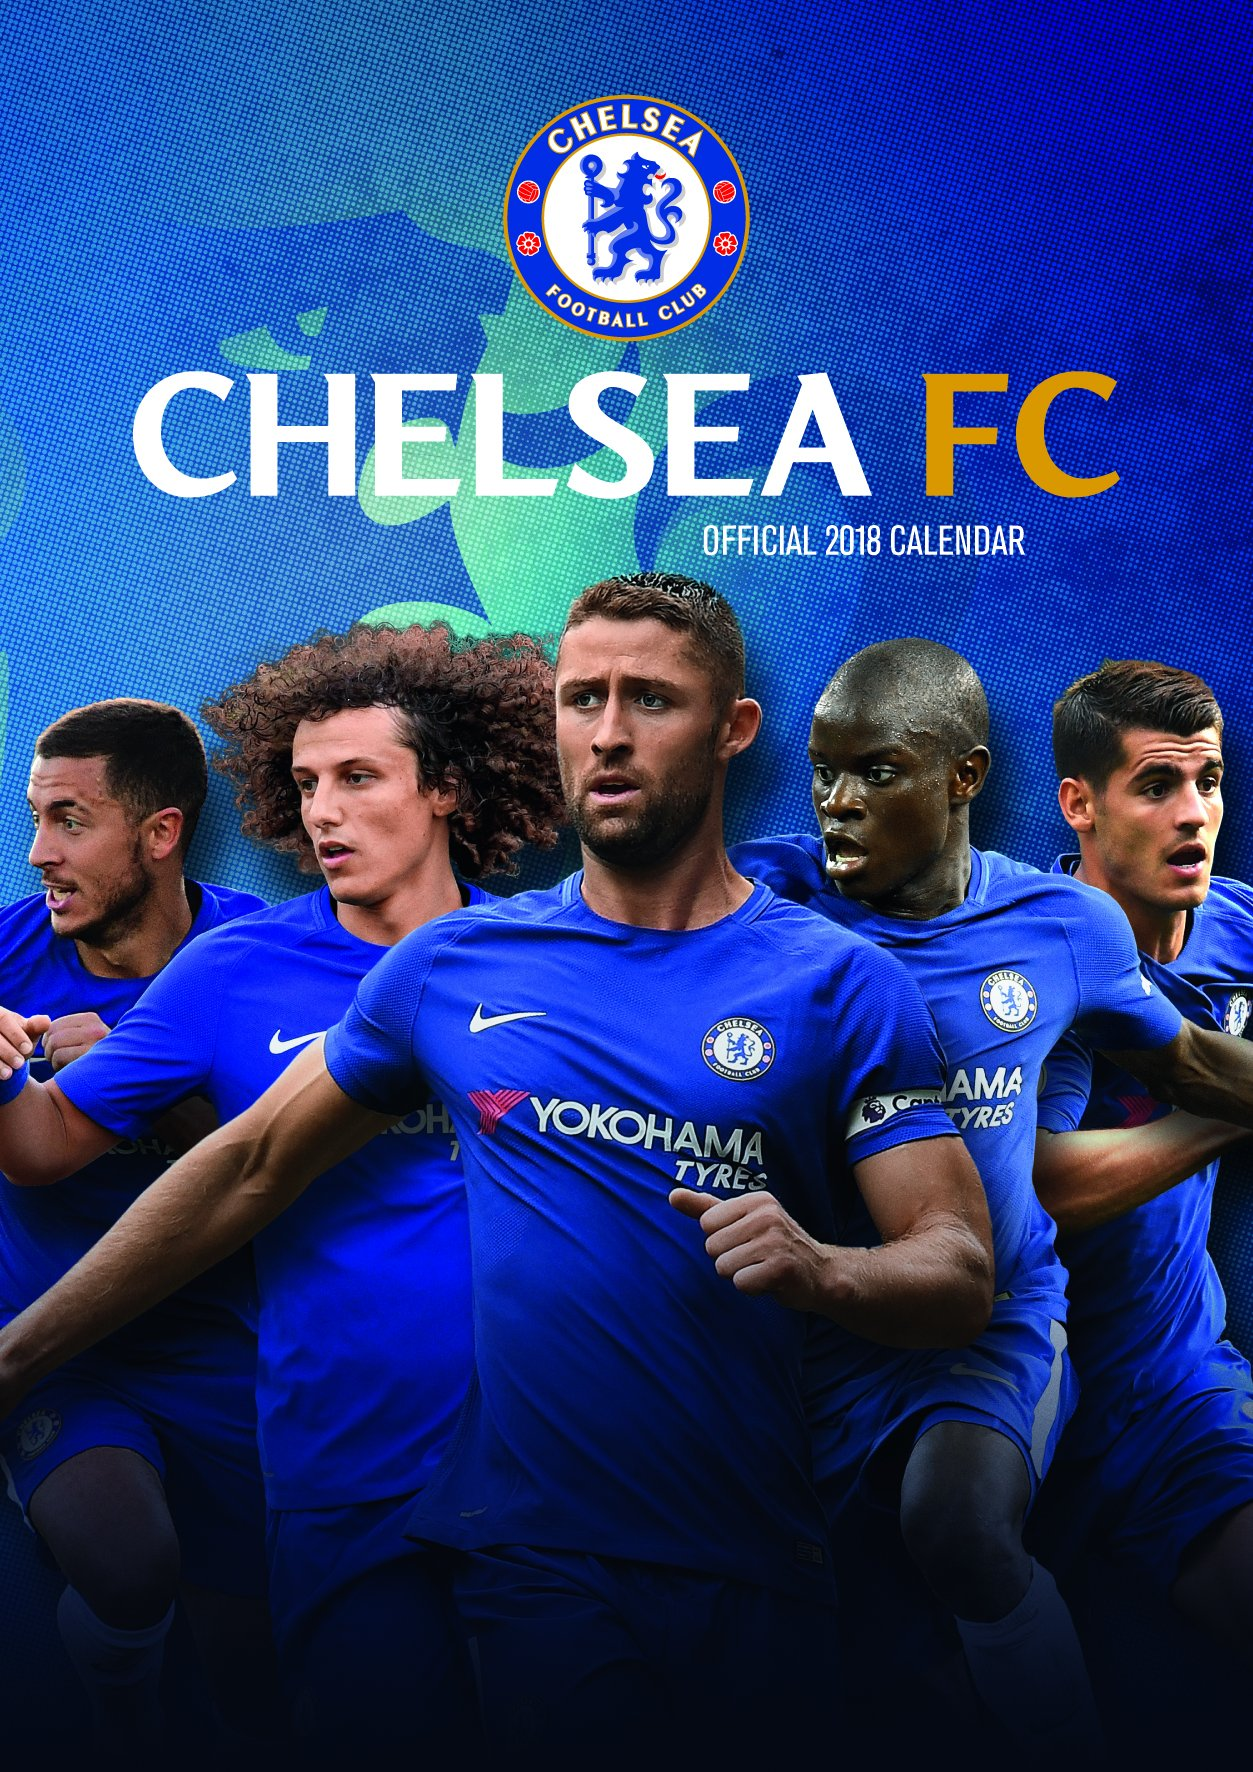 chelsea news now today